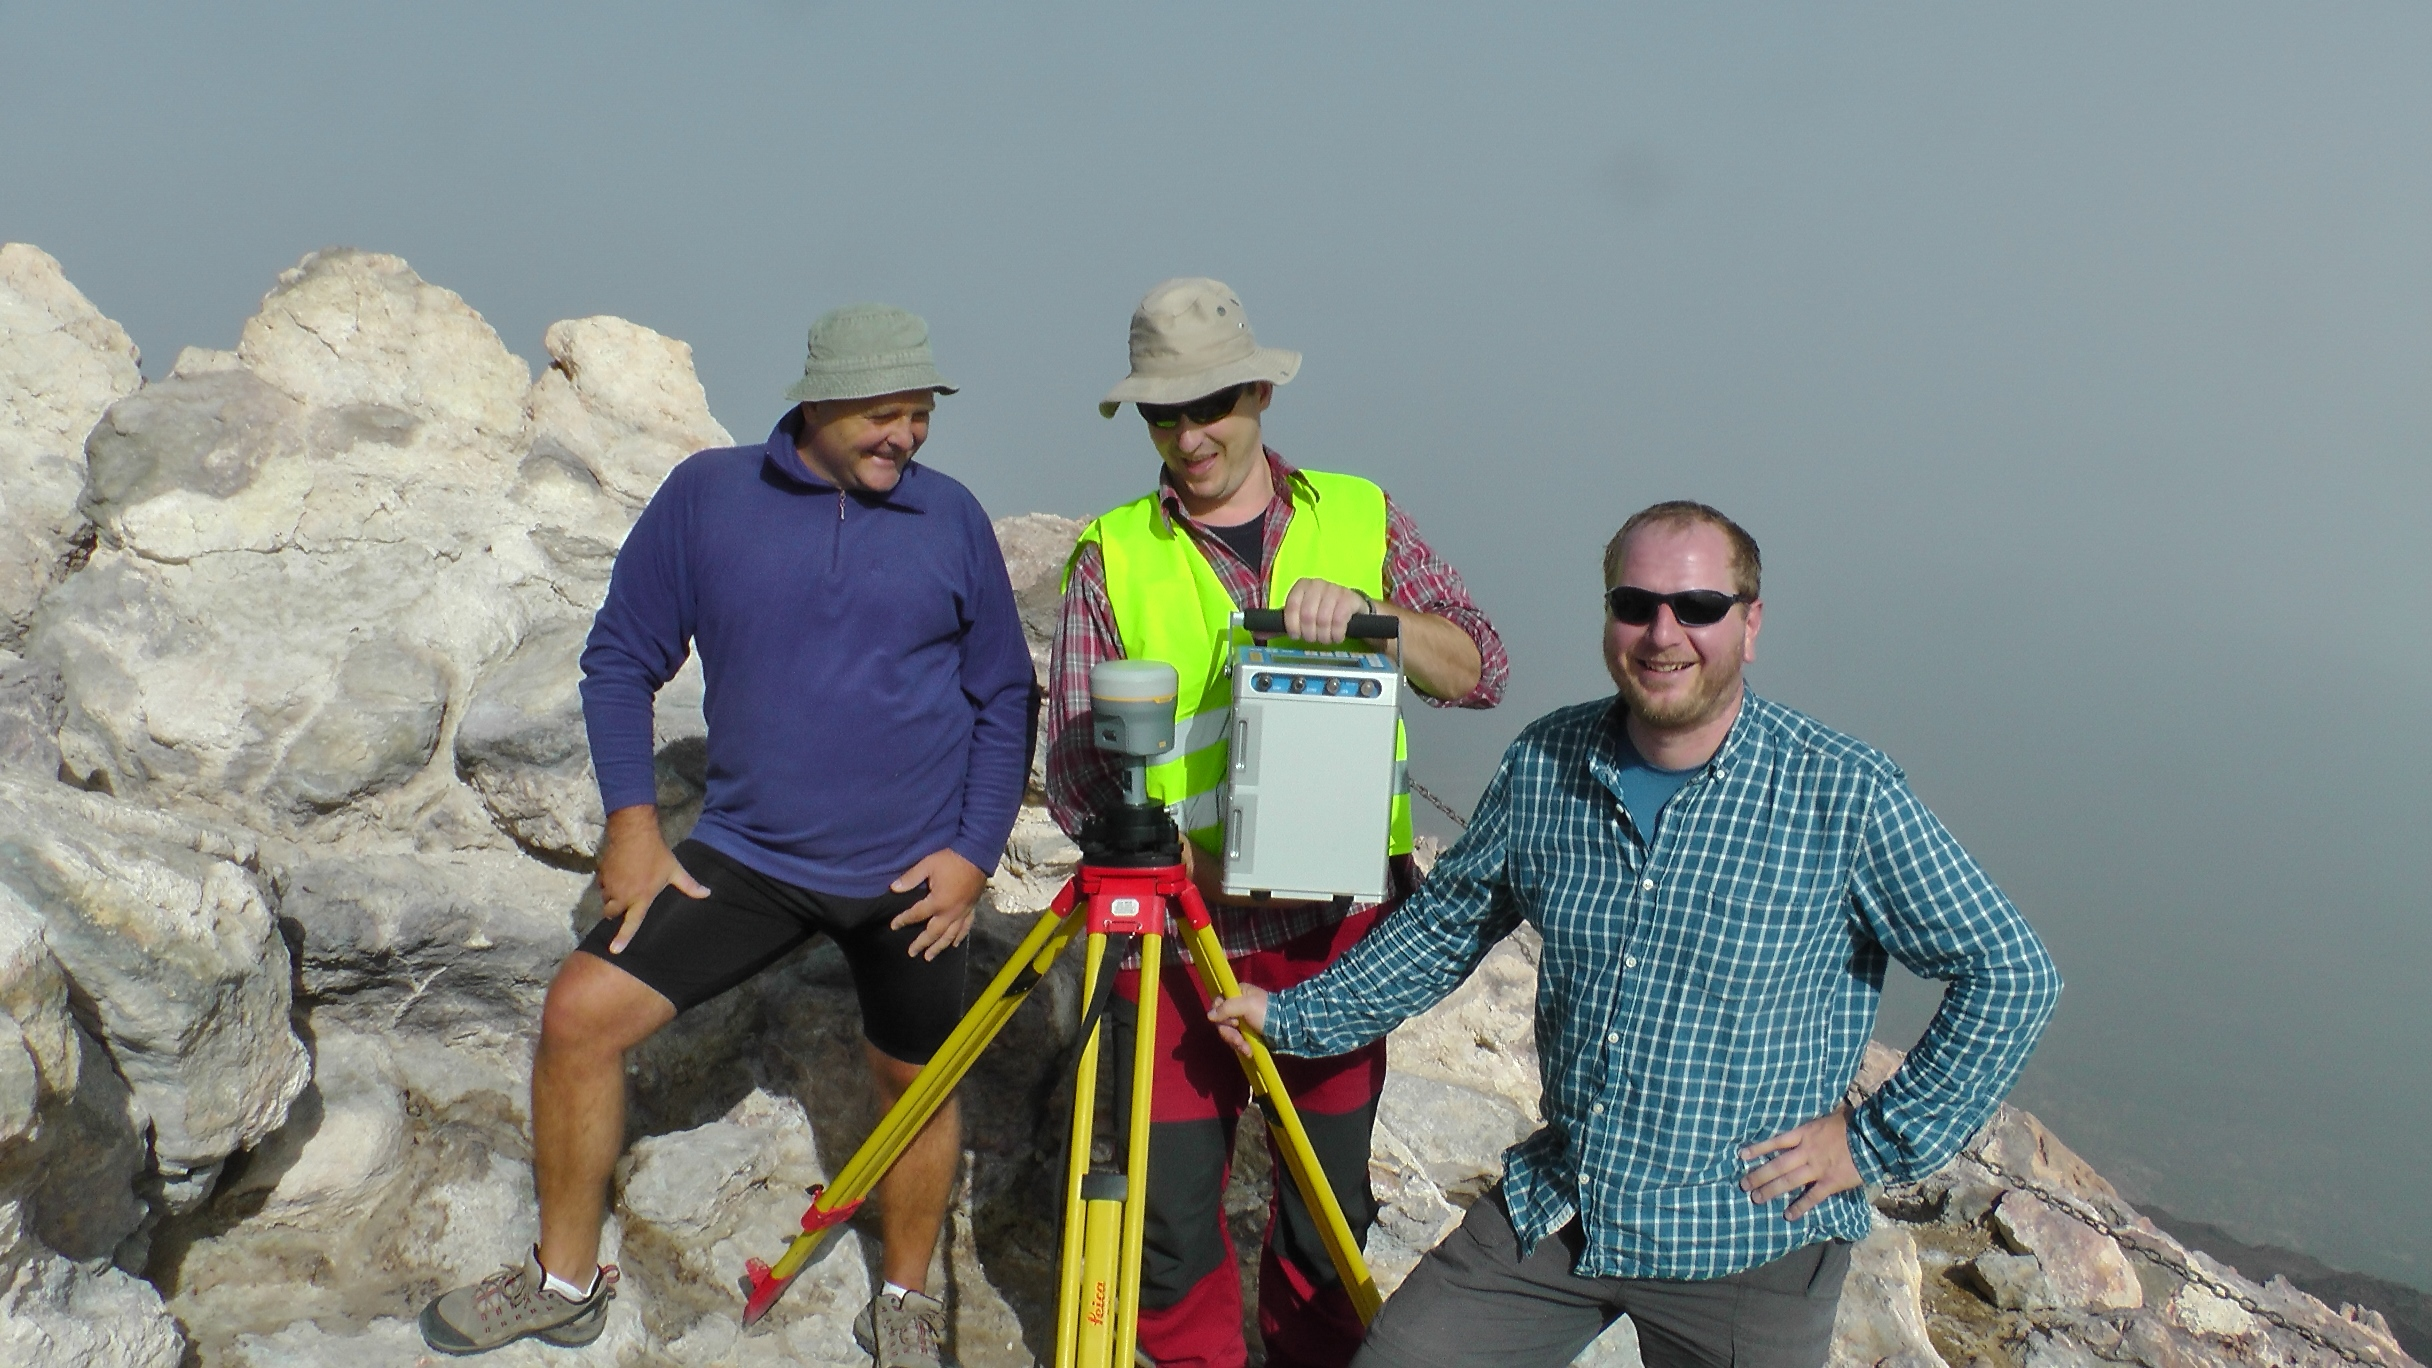 The crew at observing VGGs on the summit of Teide (3718 m a.s.l.).